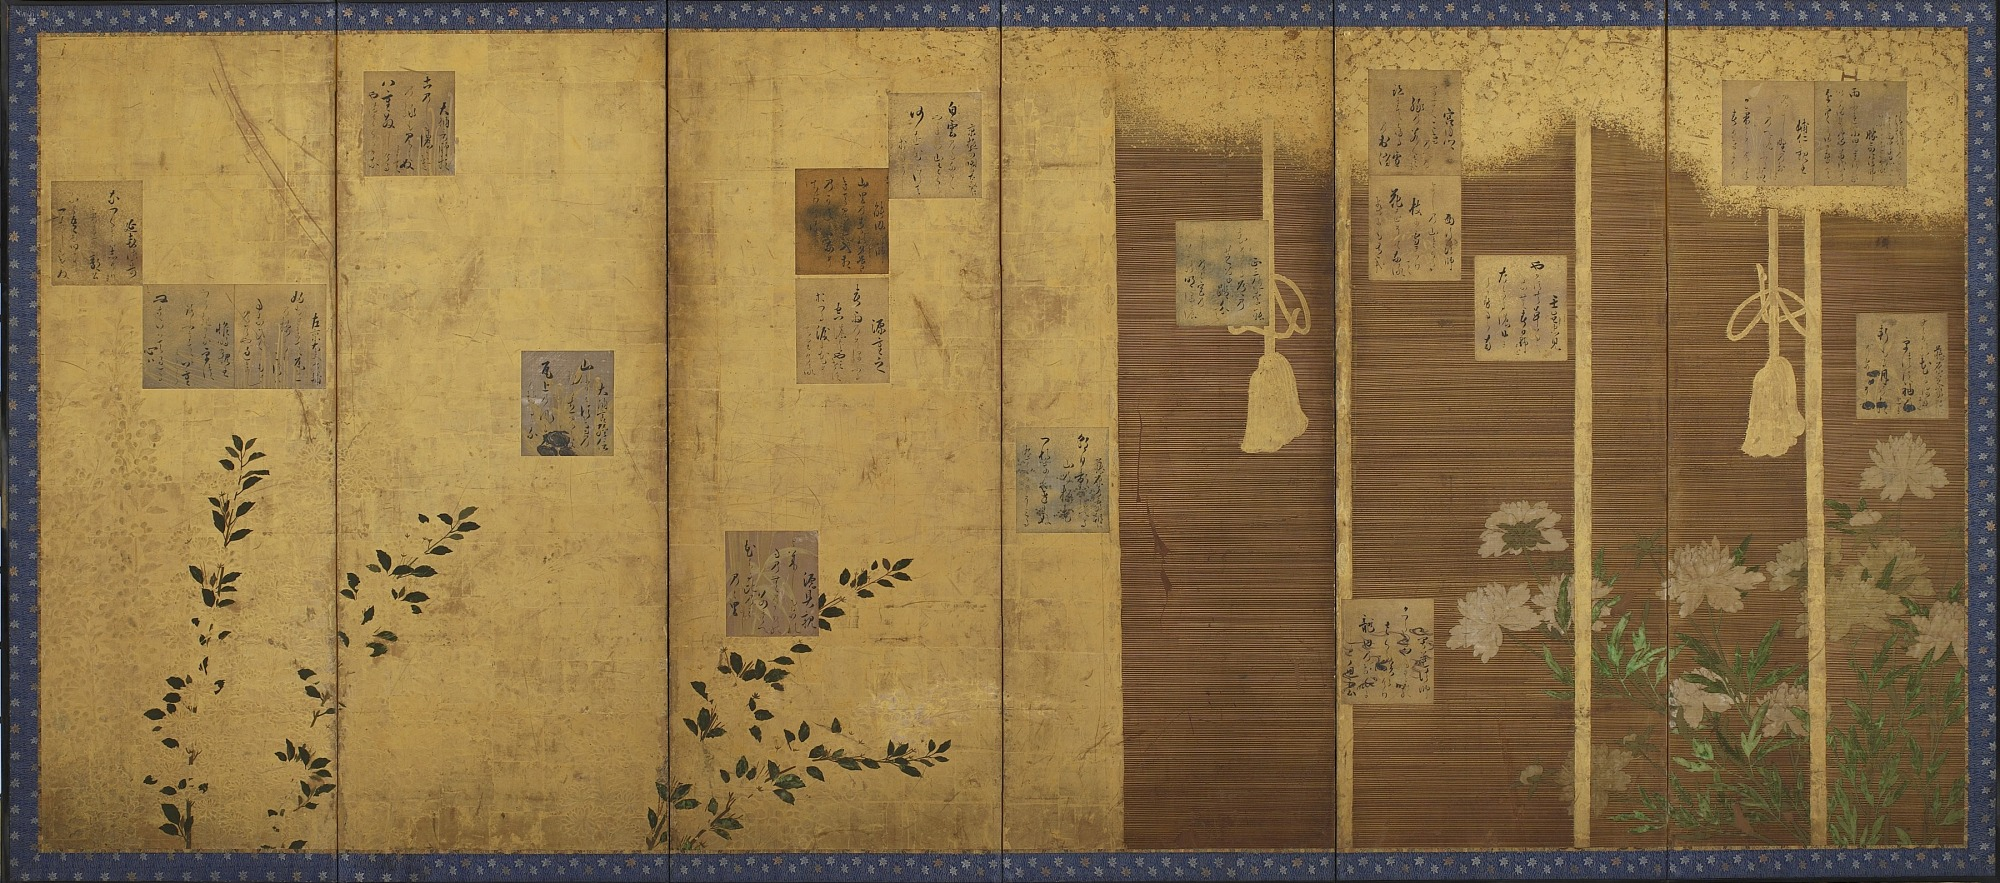 Folding screens mounted with poems from the anthology, Shin kokinshu